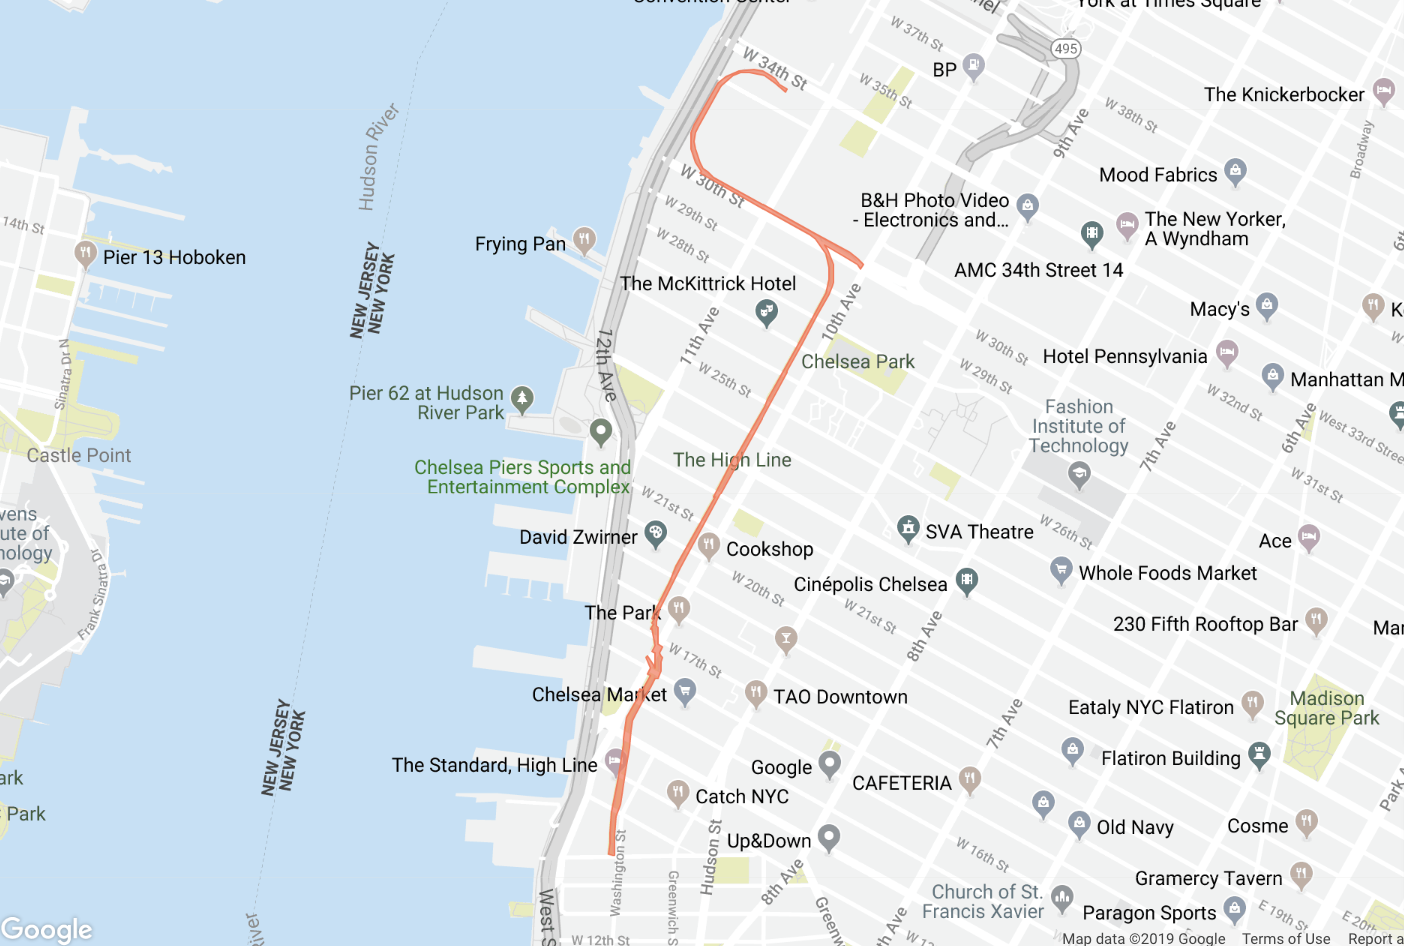 The High Line Map